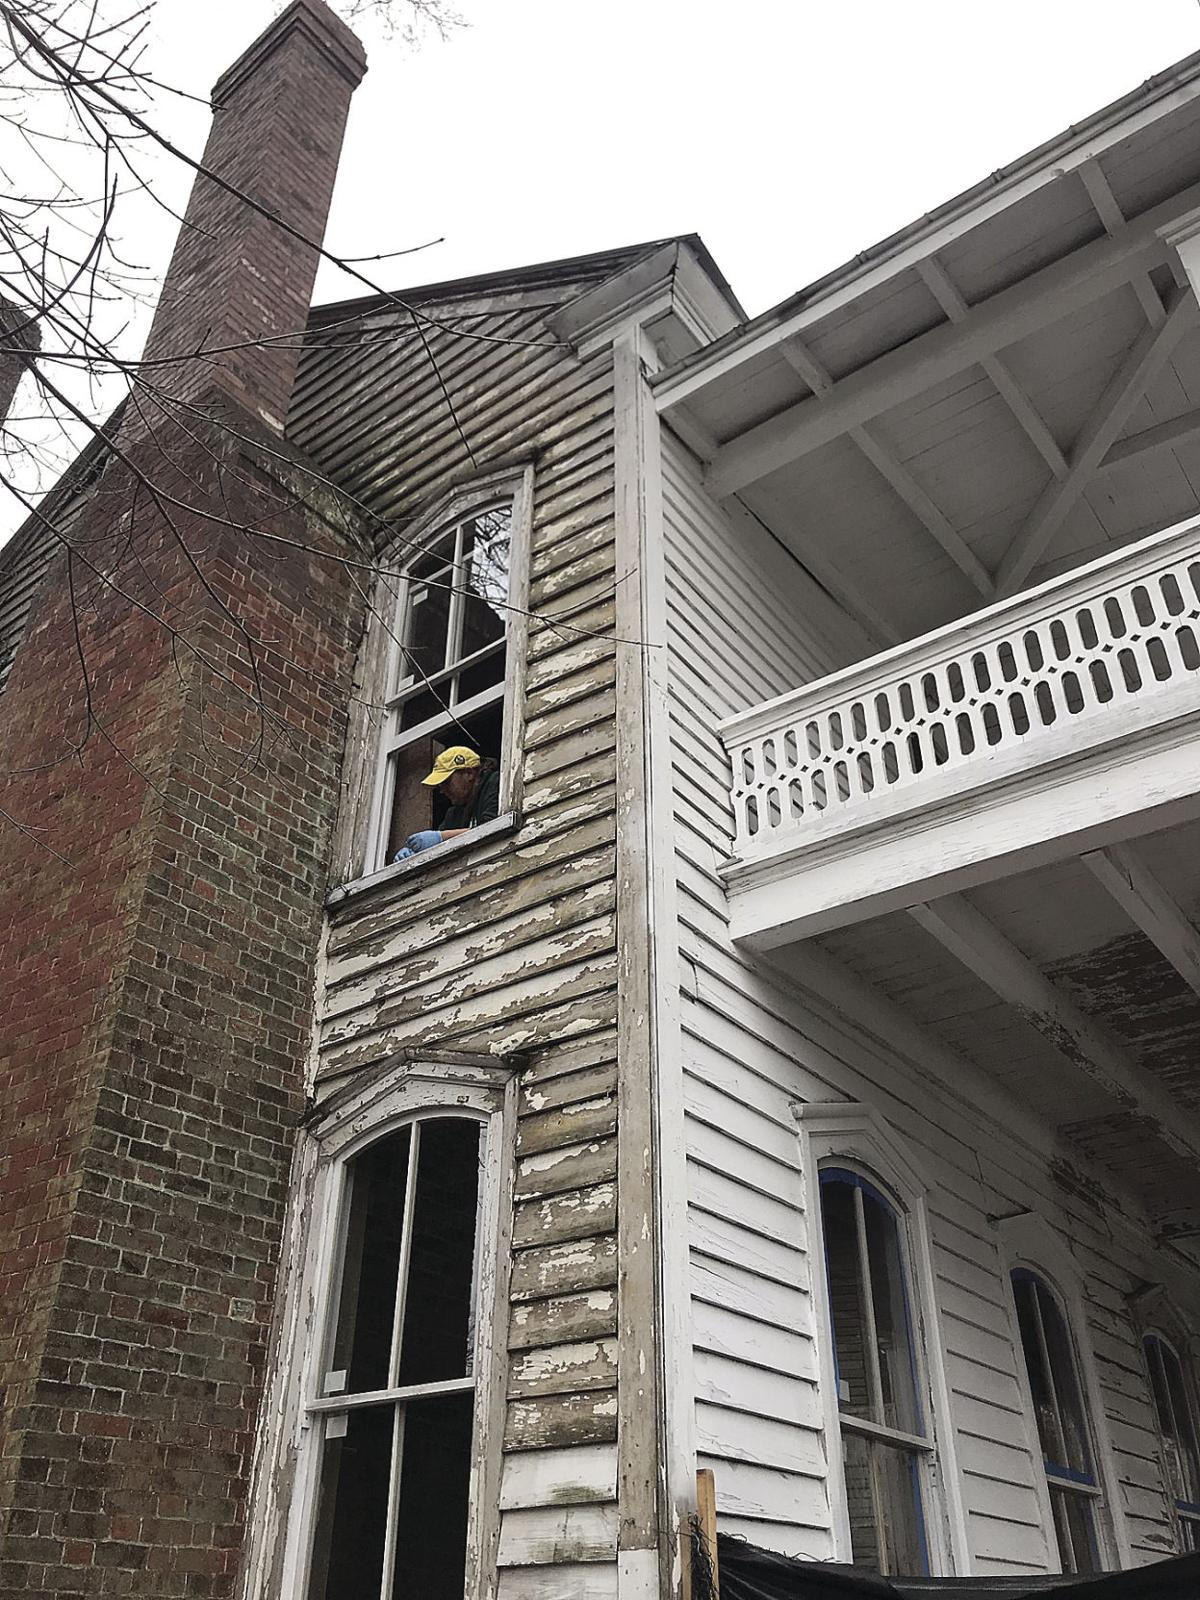 Restored windows installed at Colonial Inn